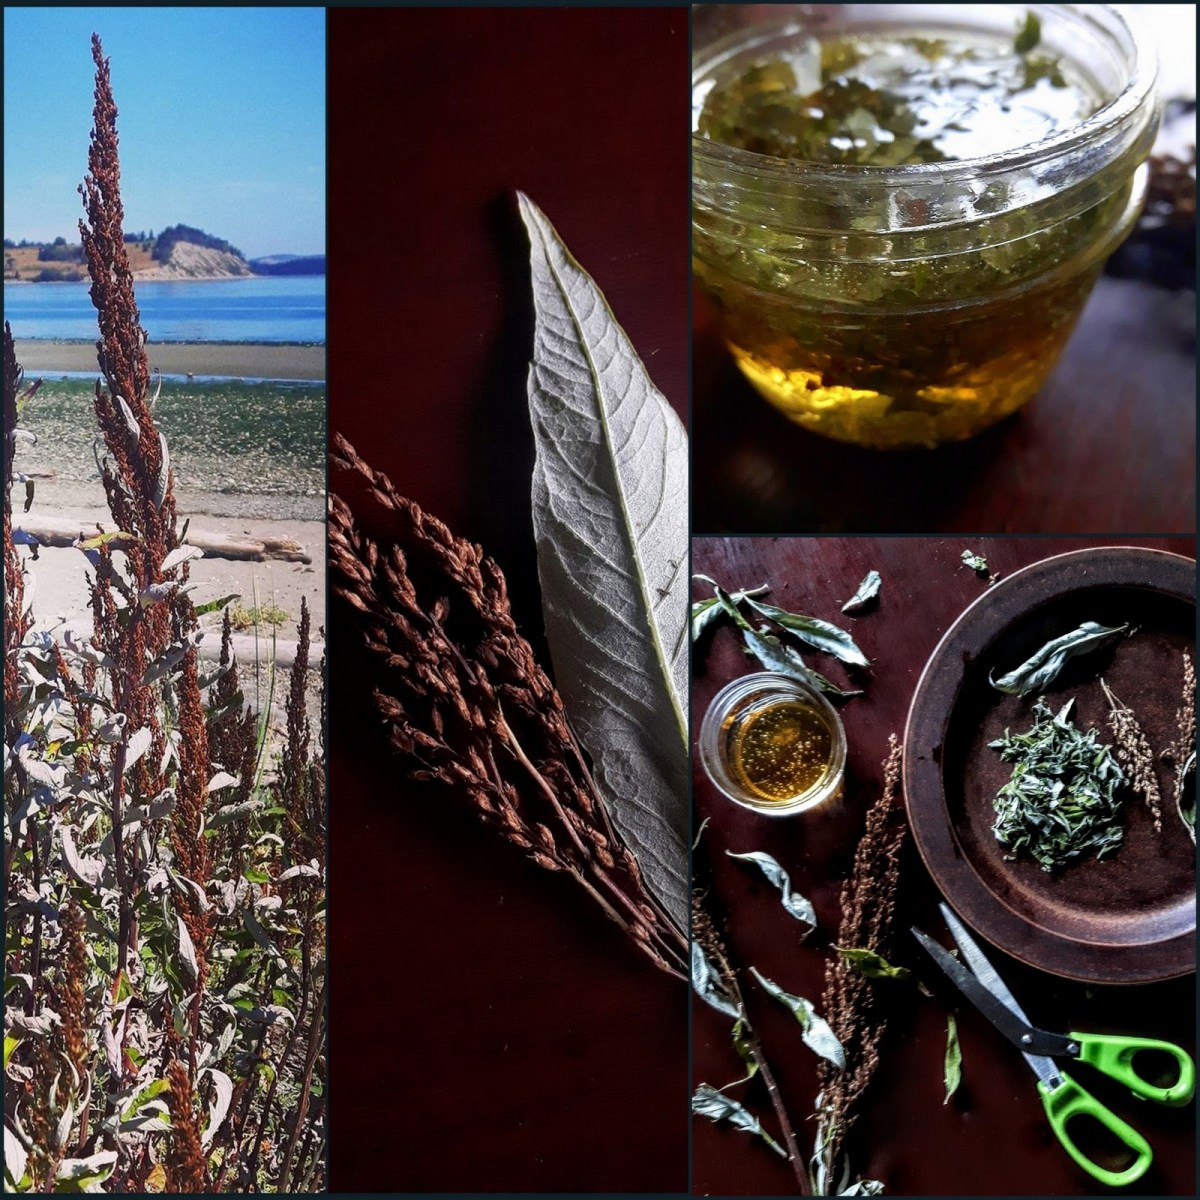 Foraging & Cooking with Coastal Mugwort: A Salt, A Honey & Vinegar